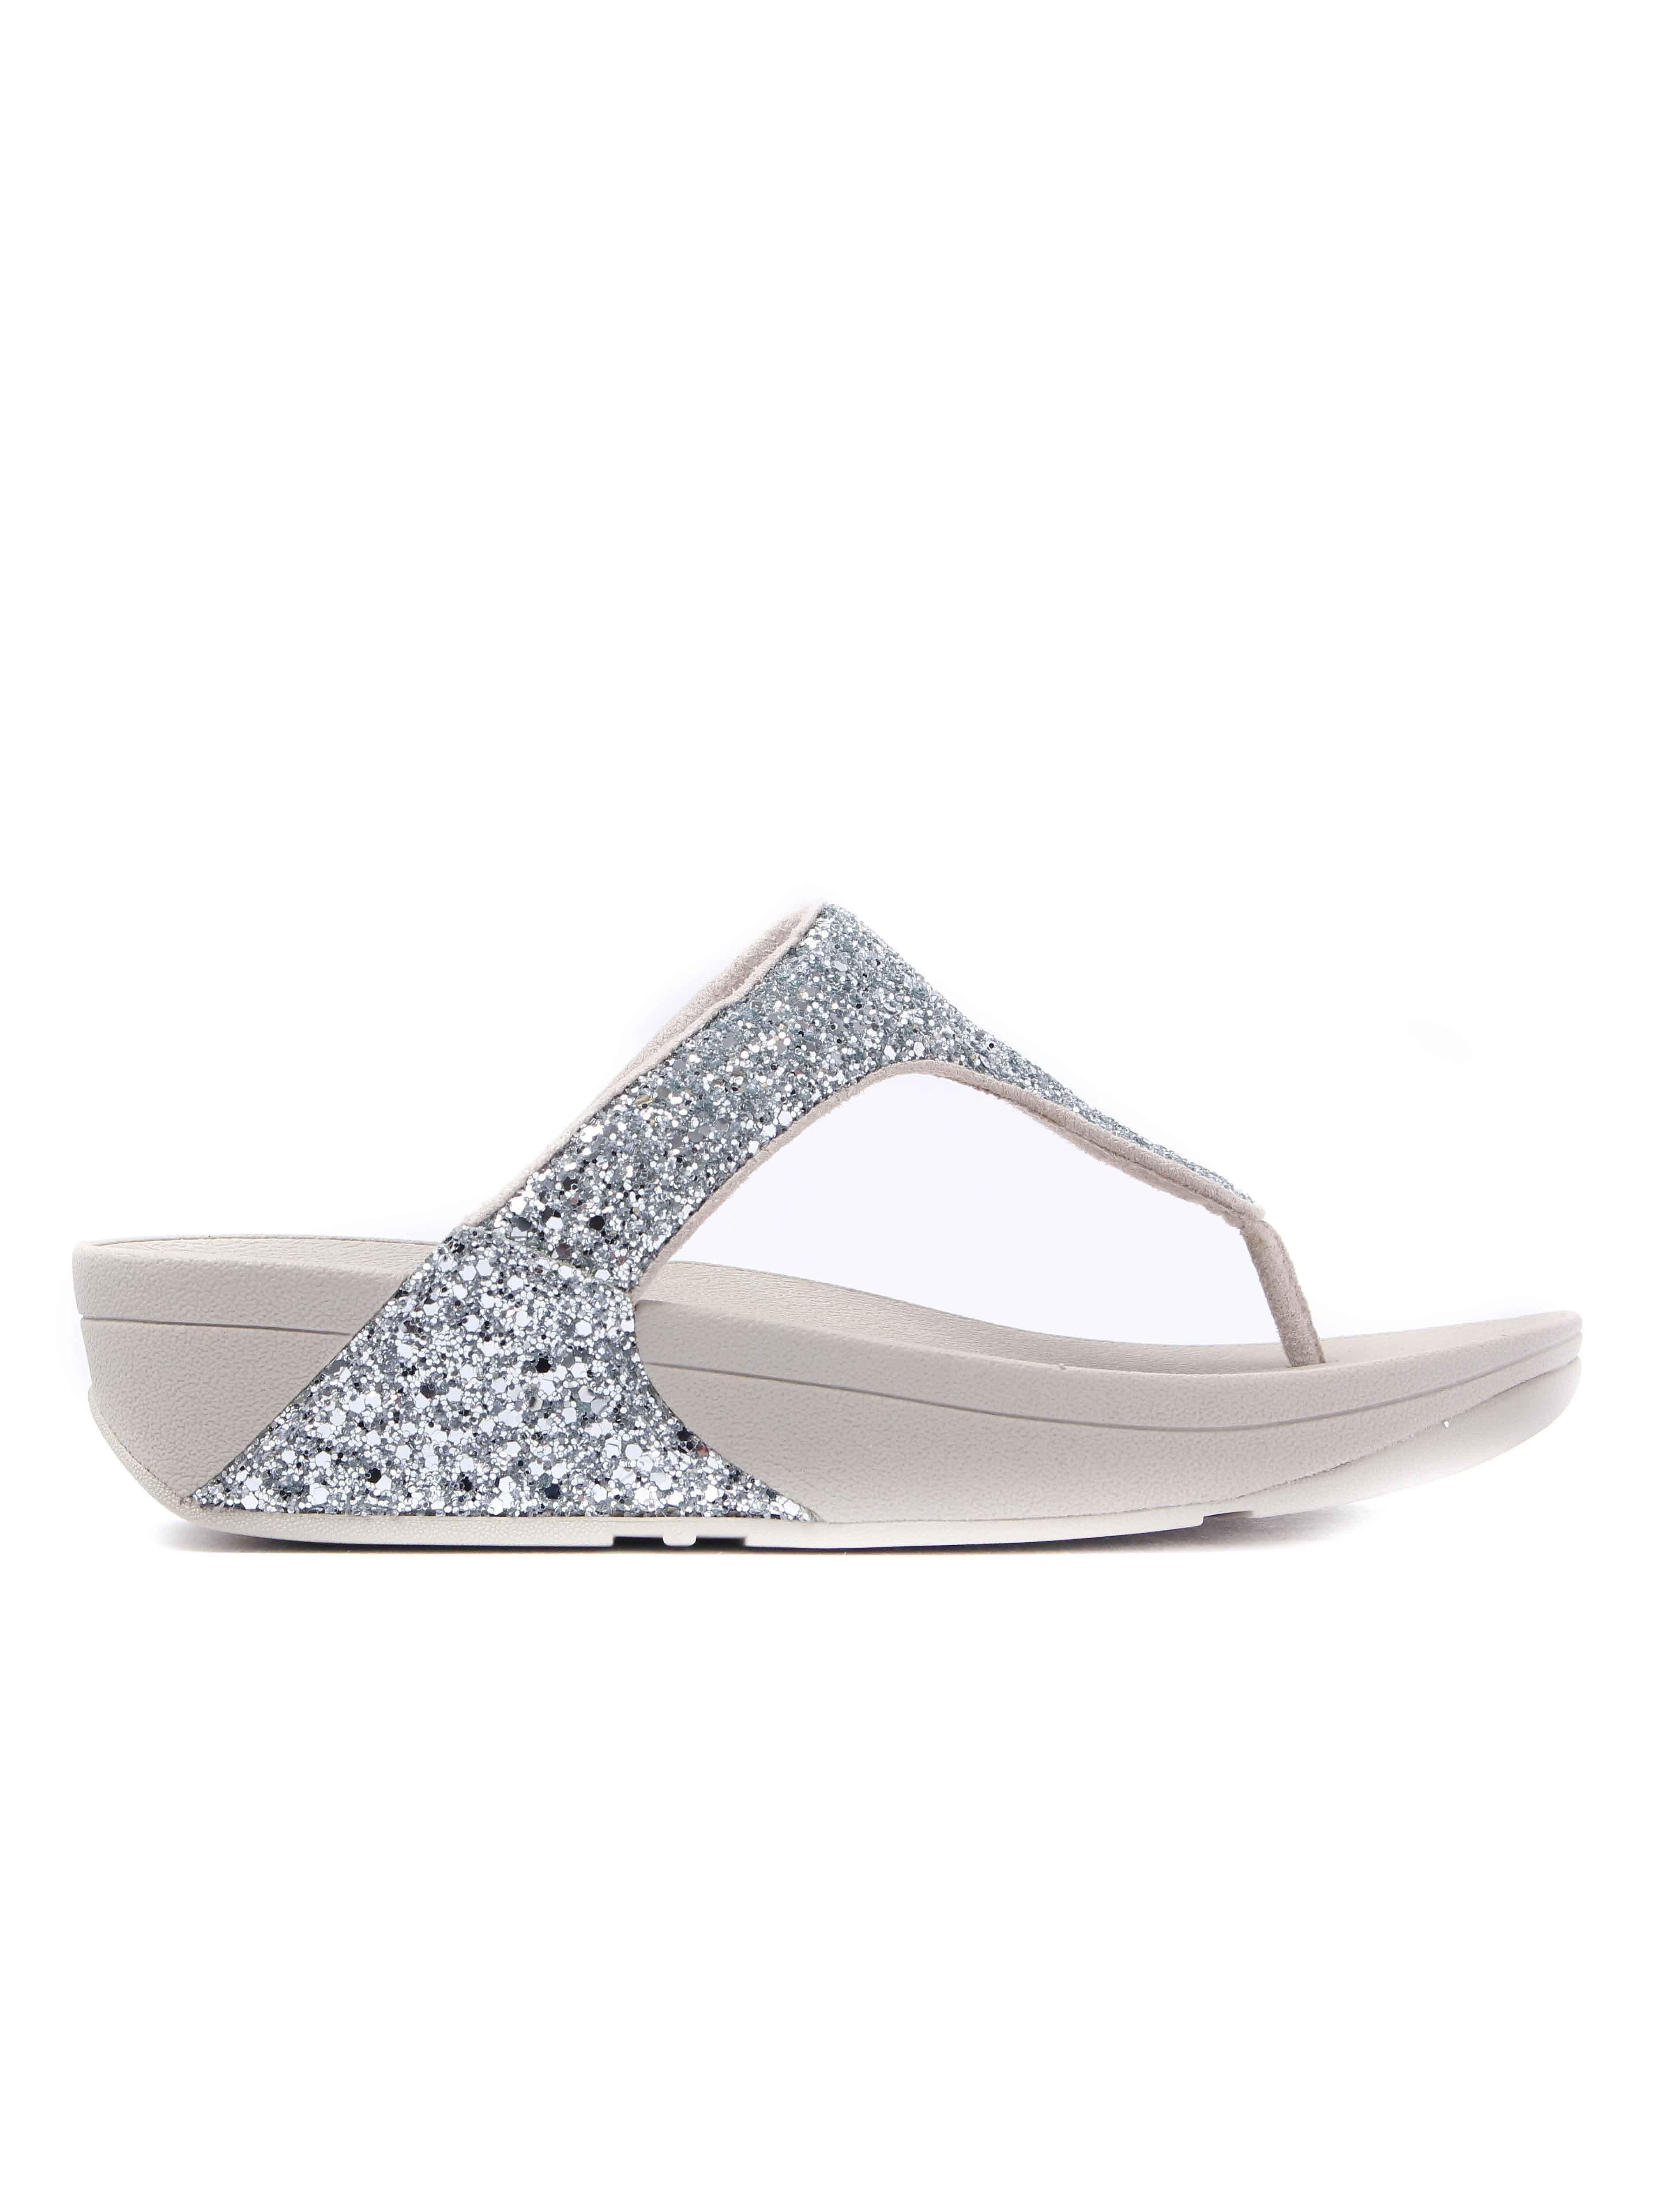 FitFlop Women's Glitterball Toe-Post Sandals - Silver